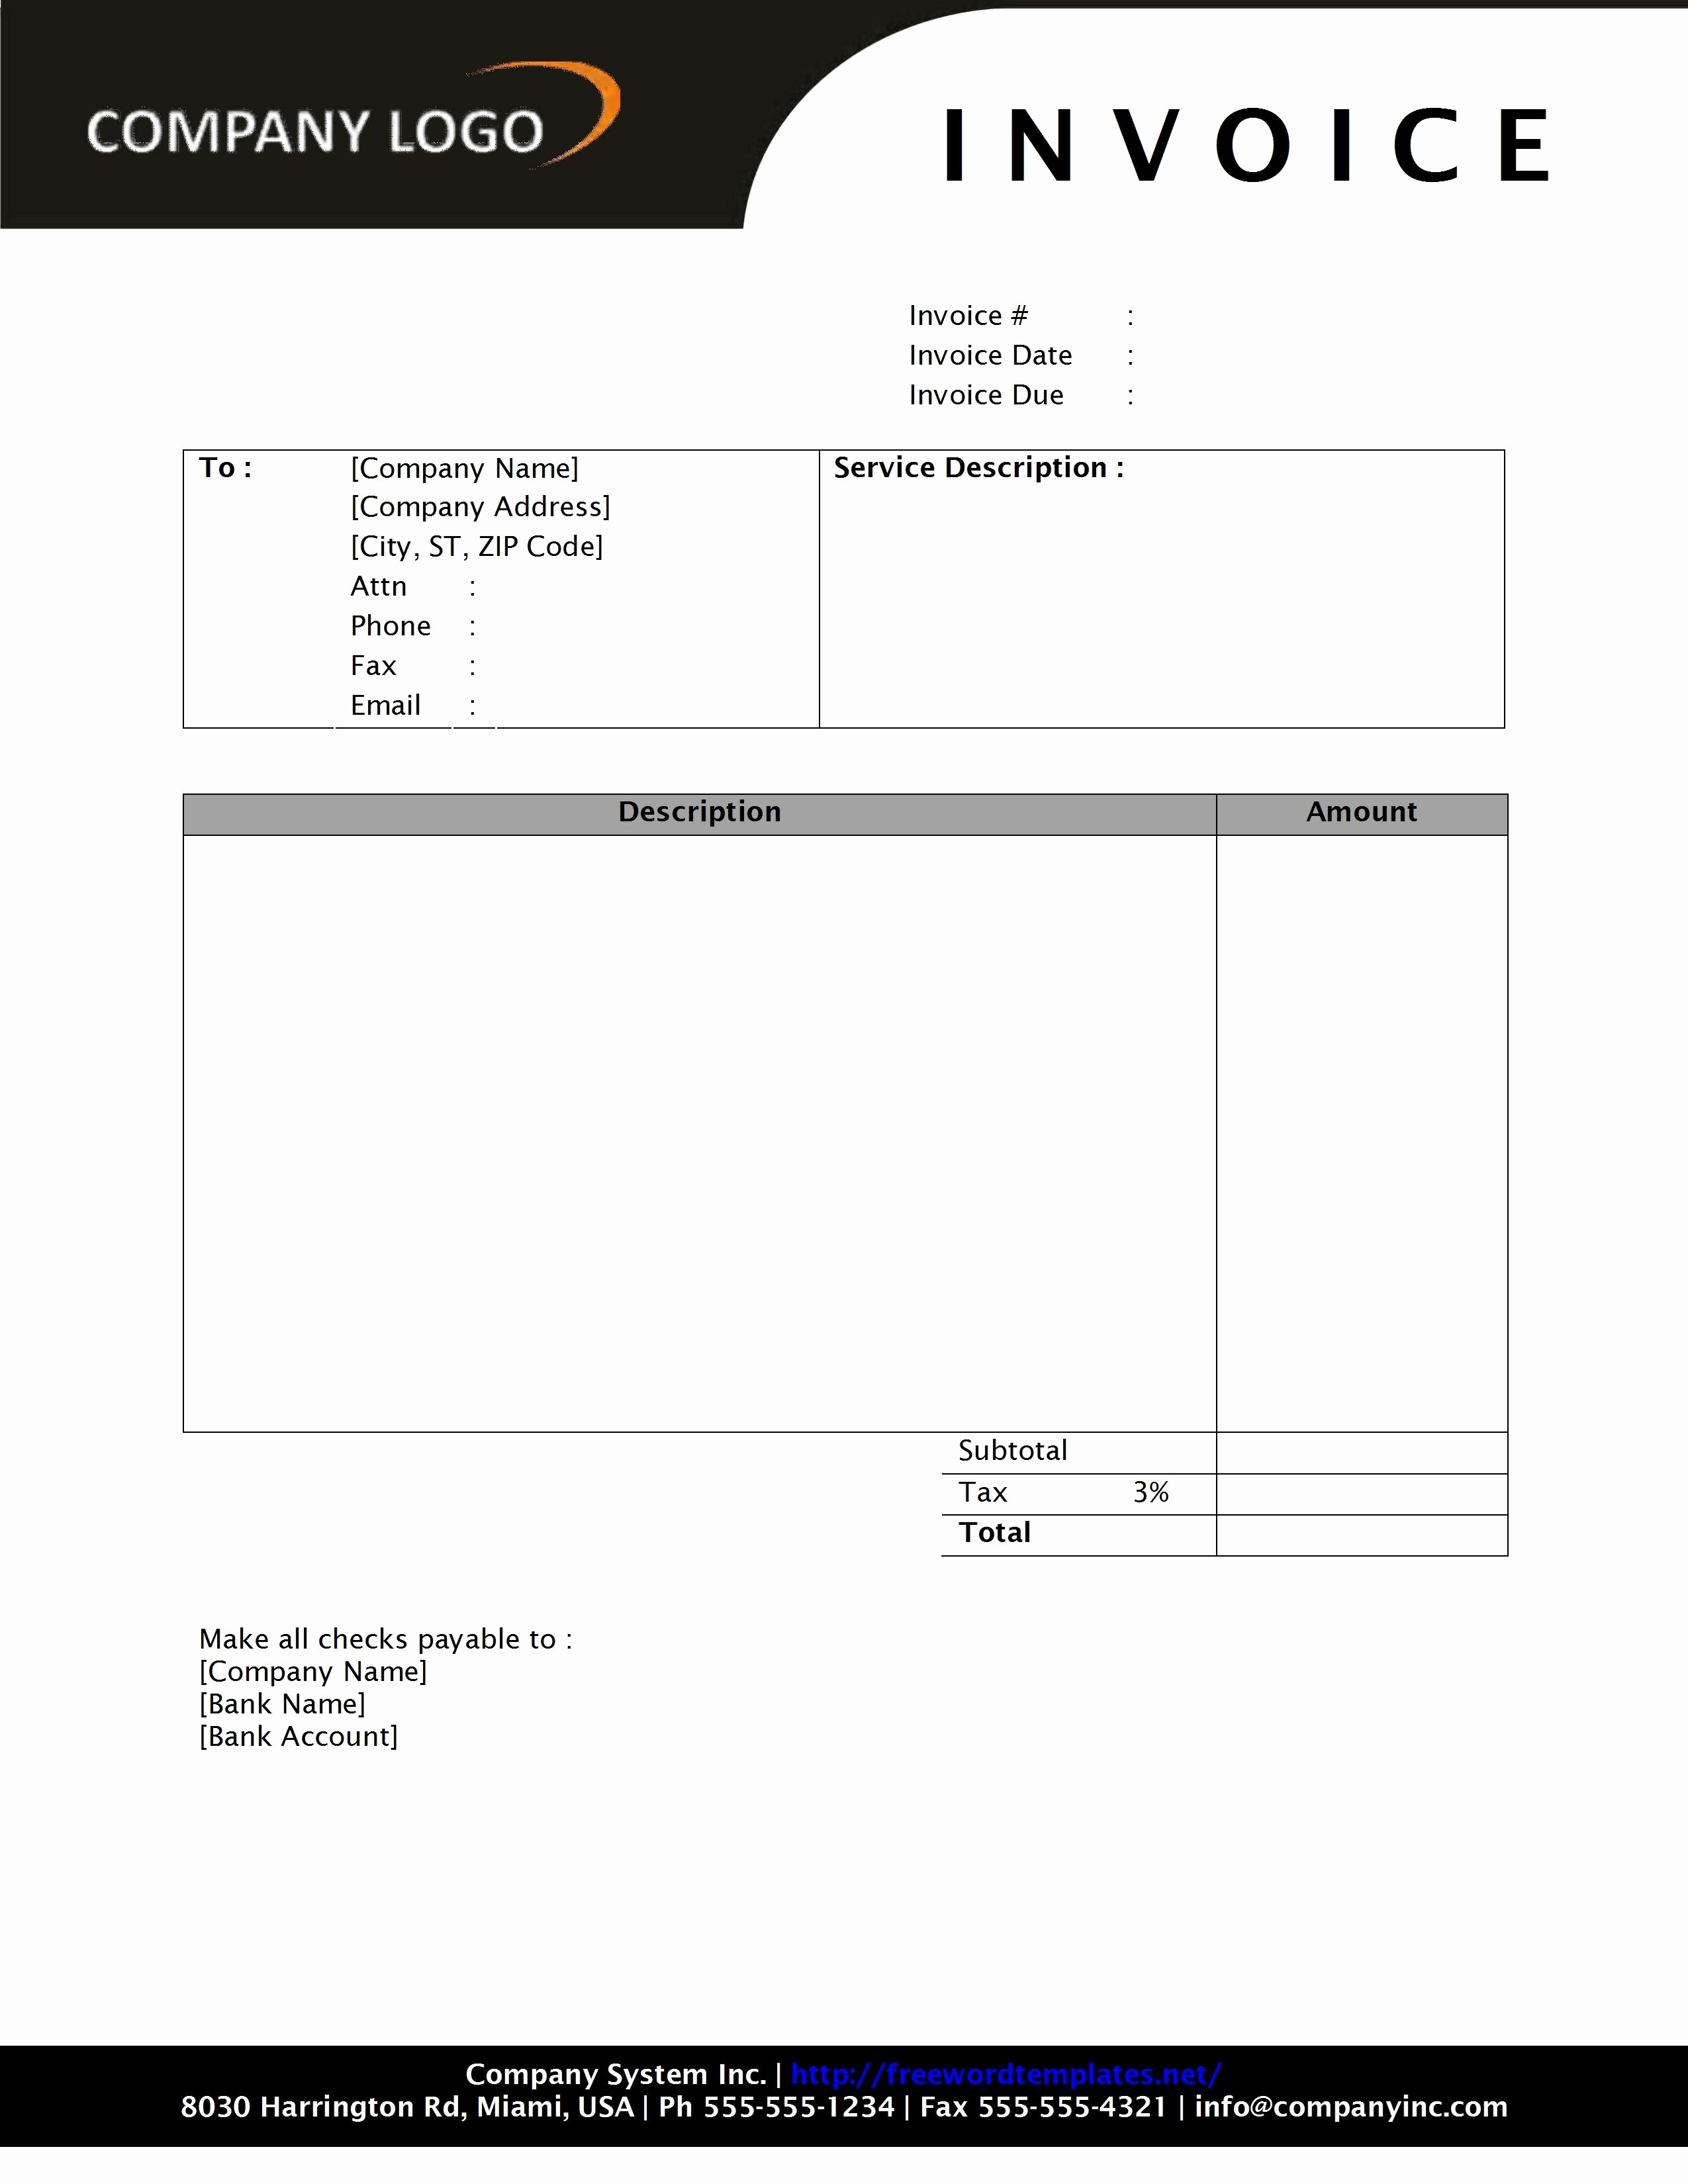 Free Invoice Template for Word Inspirational Invoice Template Word 2010